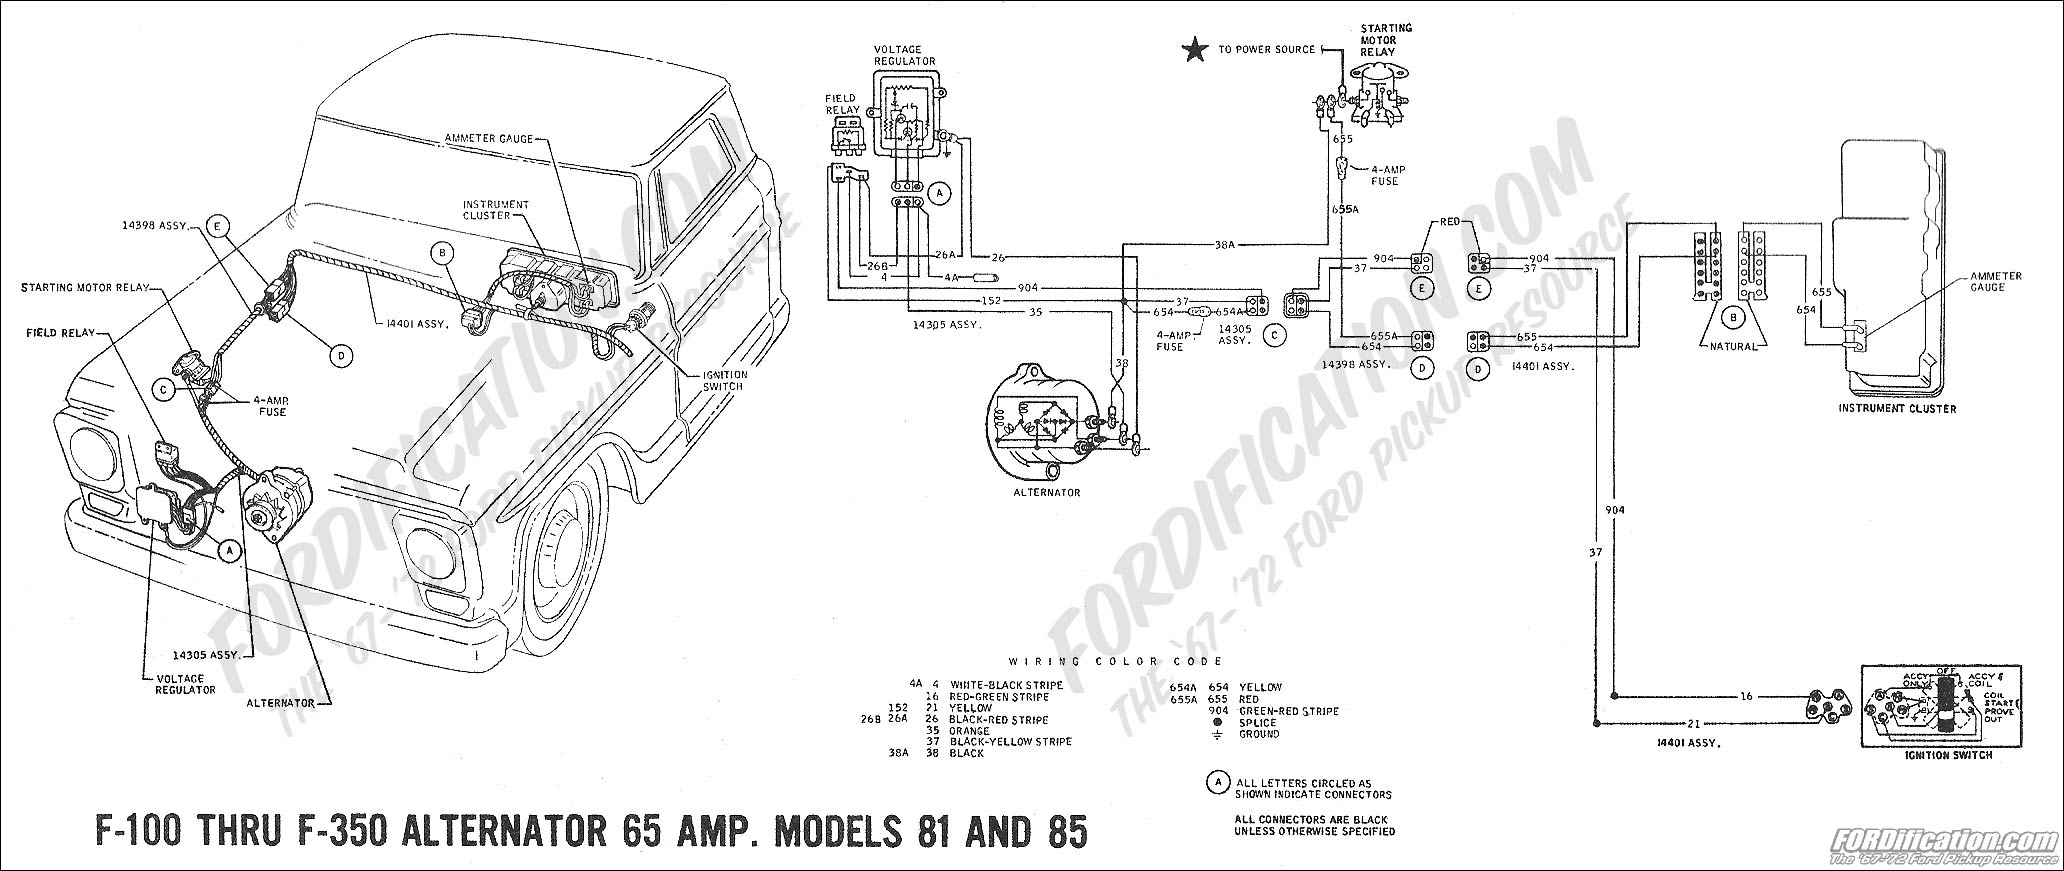 wiring_69charging03 ford truck technical drawings and schematics section h wiring 73 ford f250 wiring diagram at nearapp.co